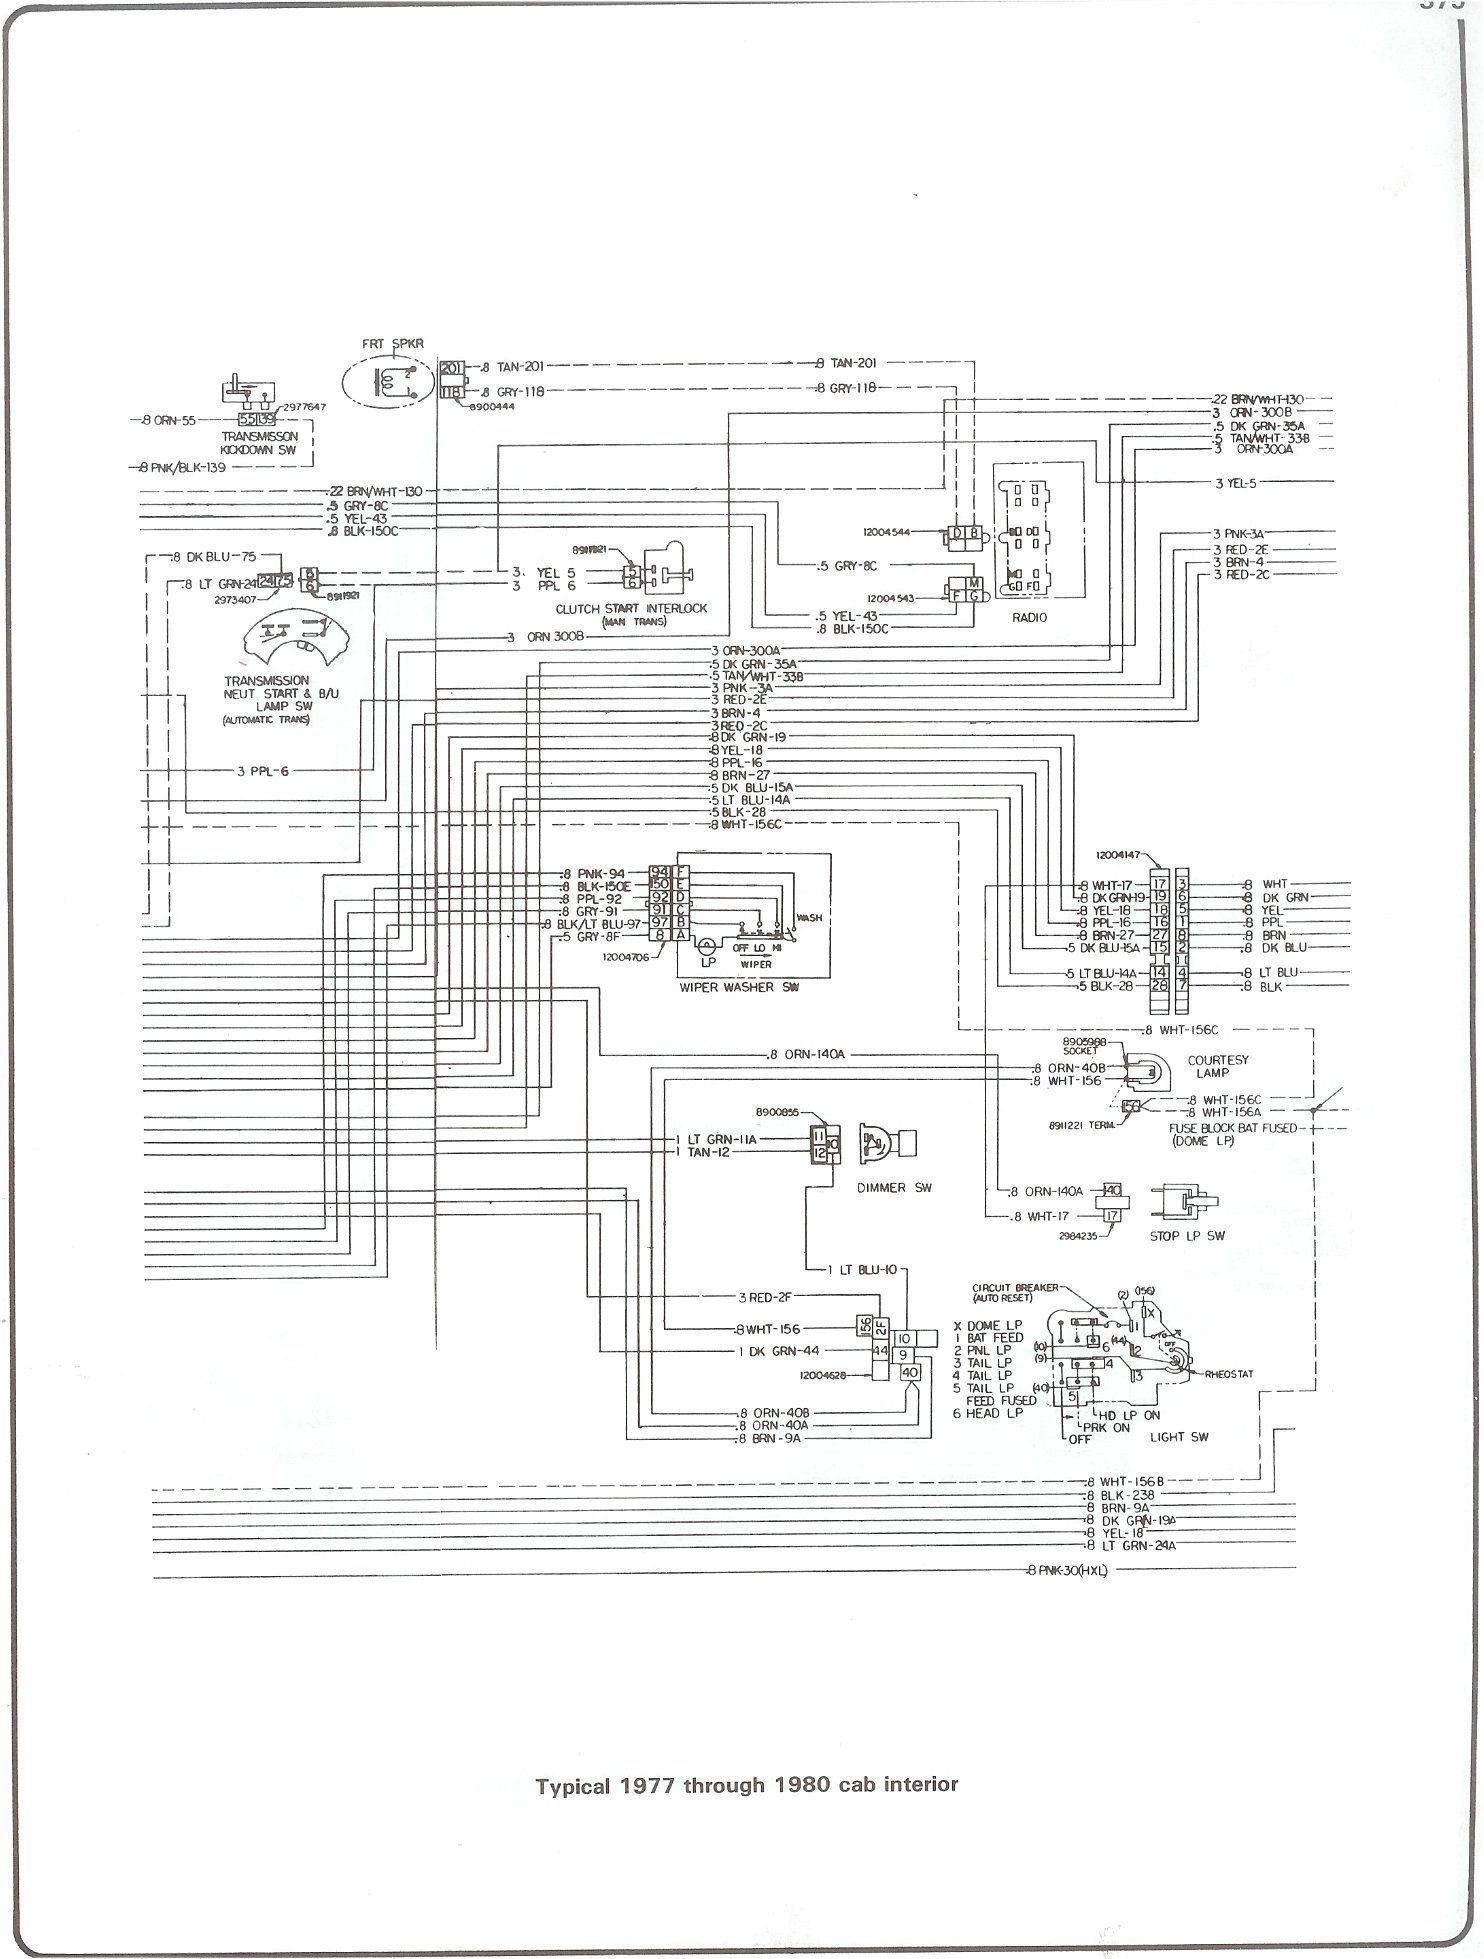 78 Gmc Wiring Diagram Diagrams Box 2008 Chevrolet C4500 Complete 73 87 2004 2500hd Sierra